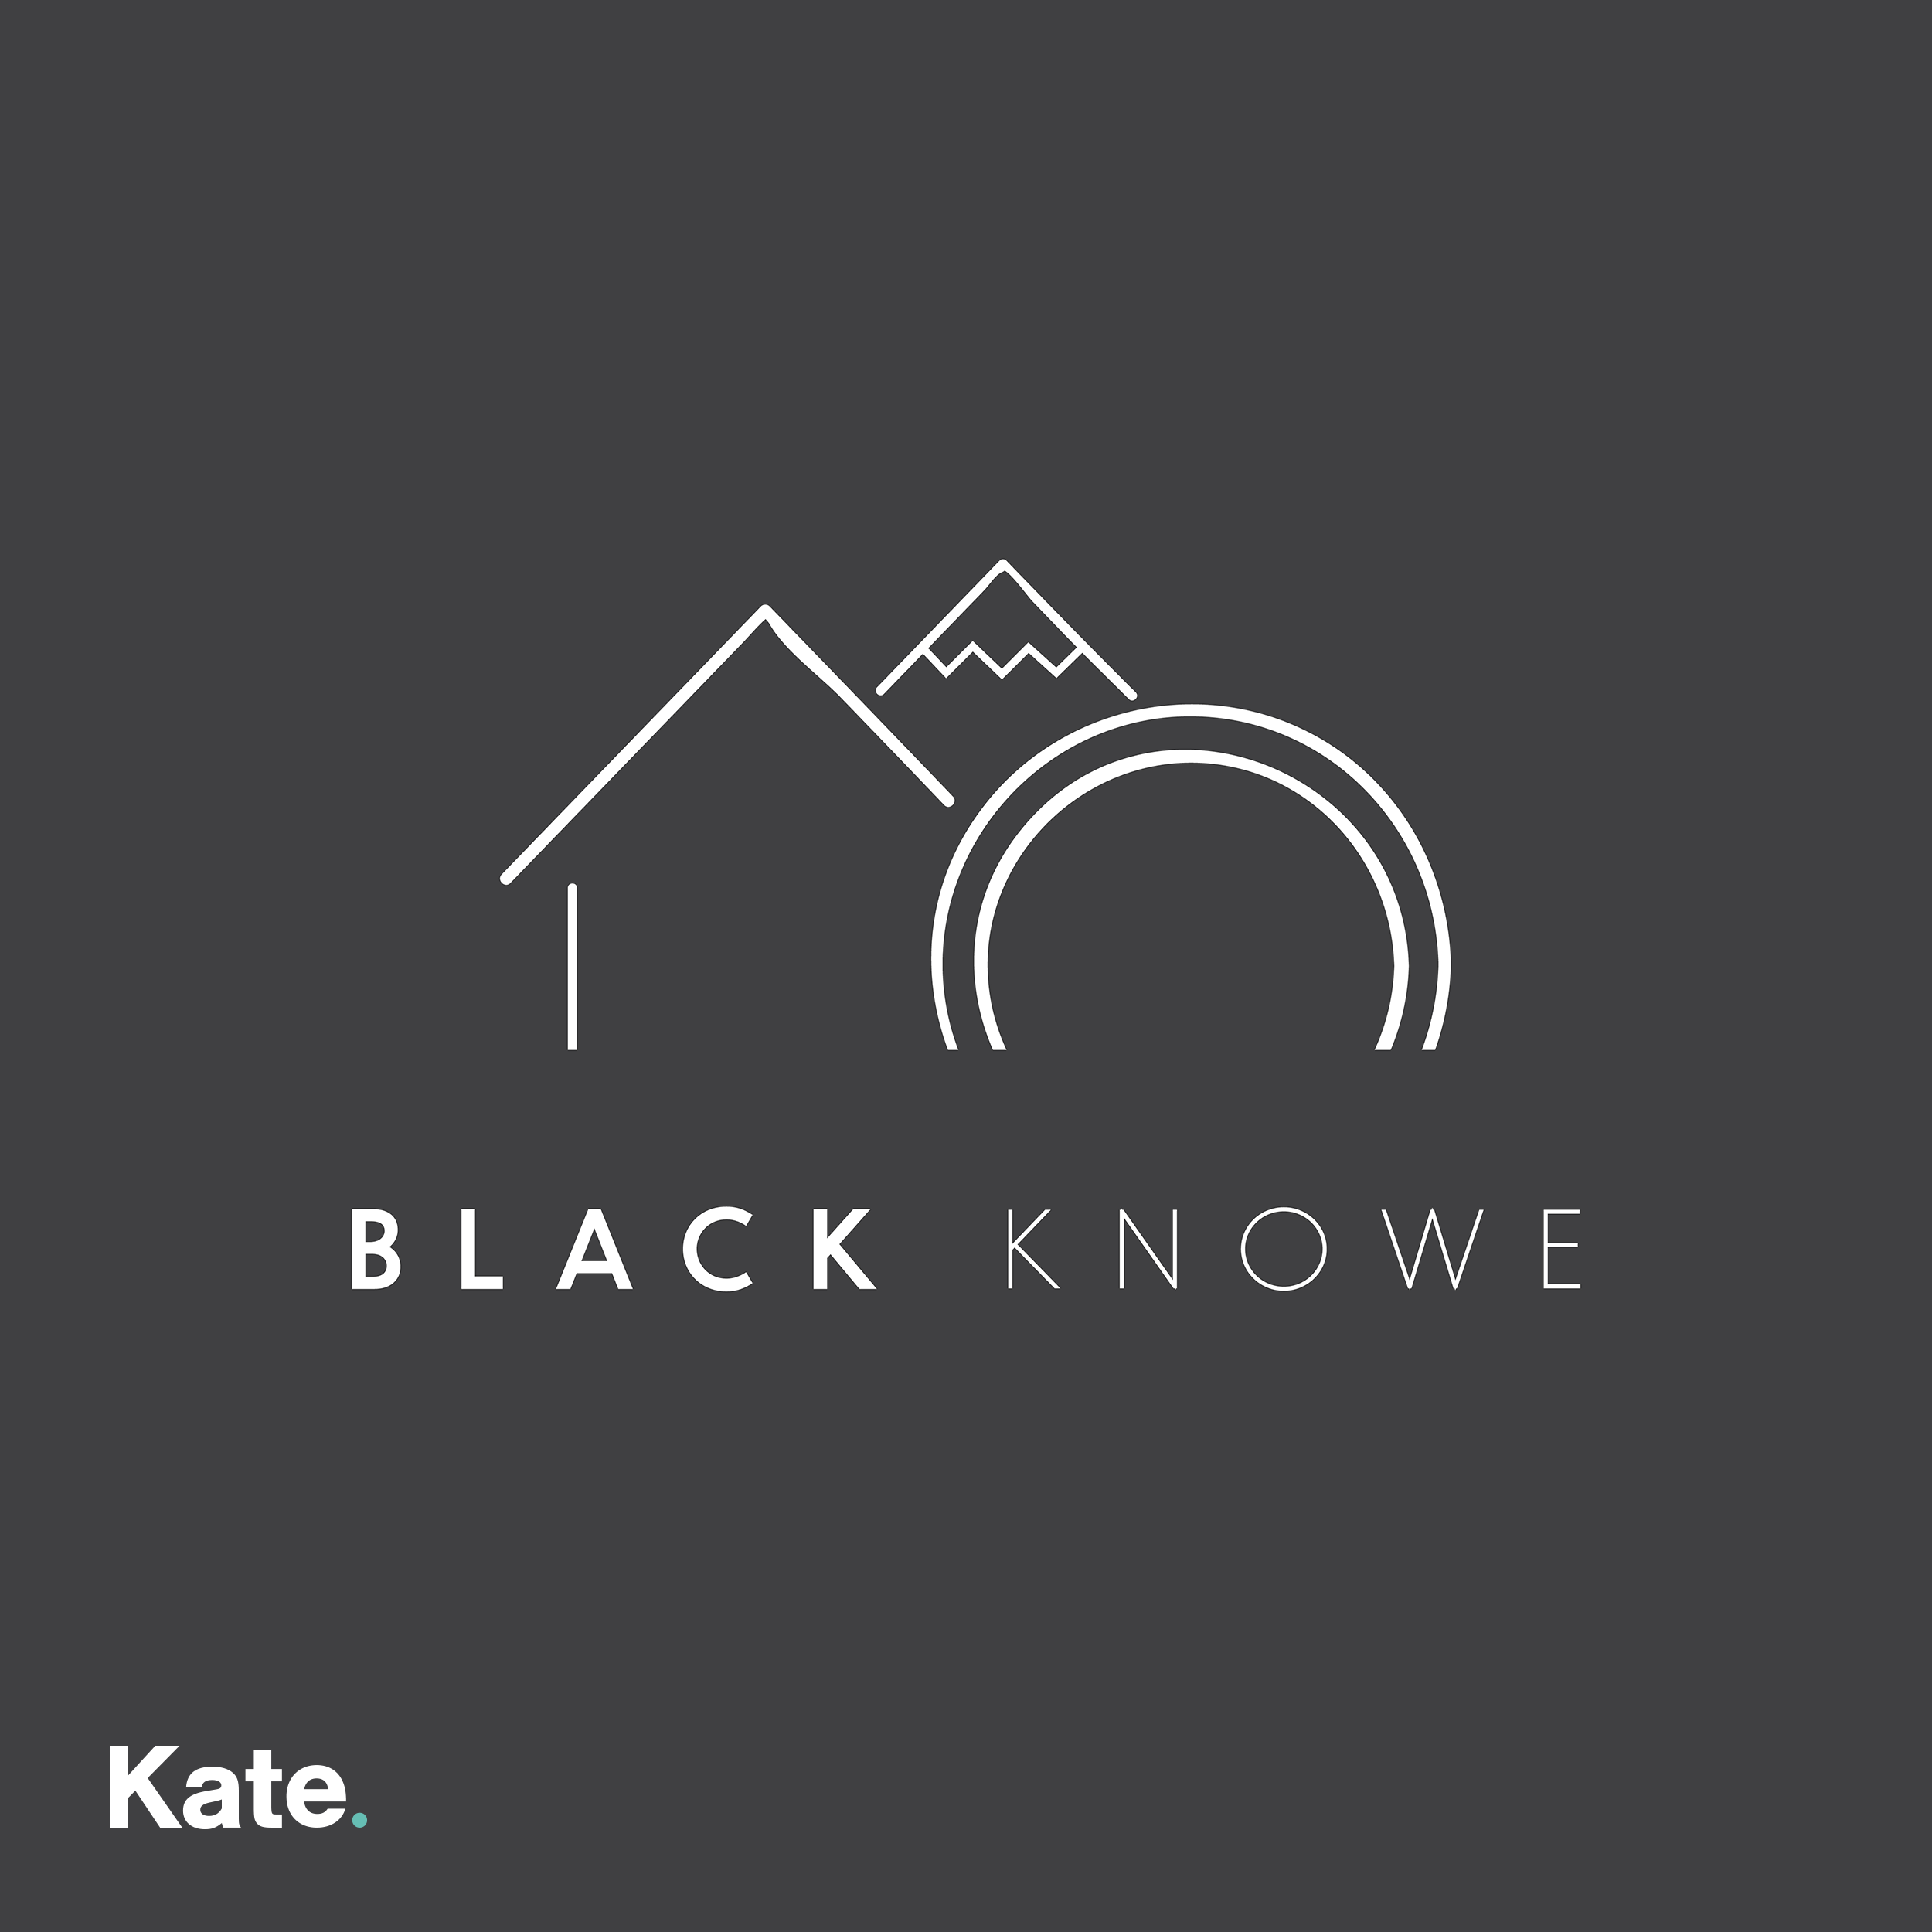 Black Knowe Logo